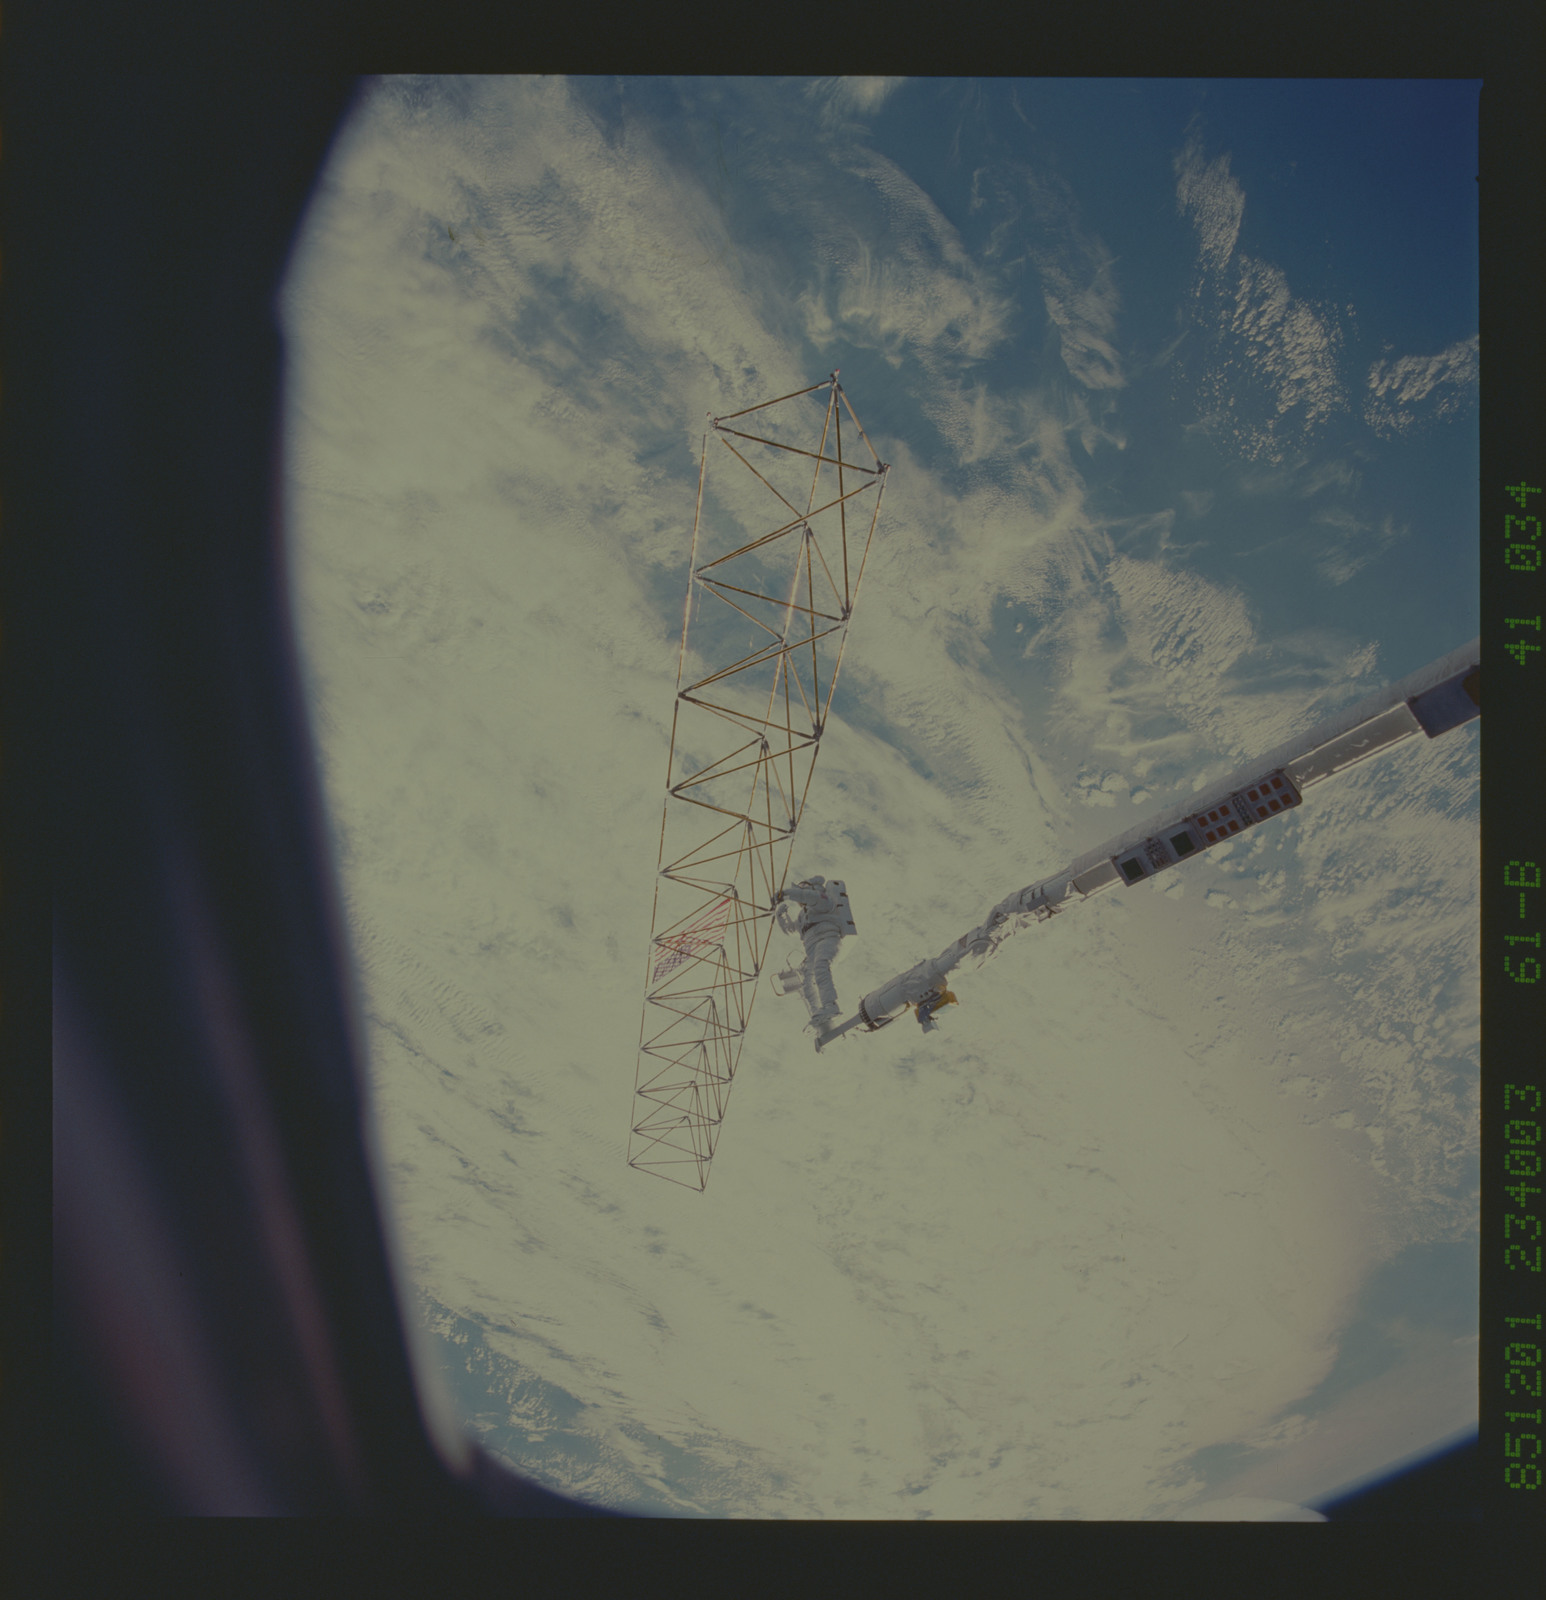 61B-41-034 - STS-61B - Ross and Spring work on EASE and ACCESS during Extravehicular Activity (EVA)